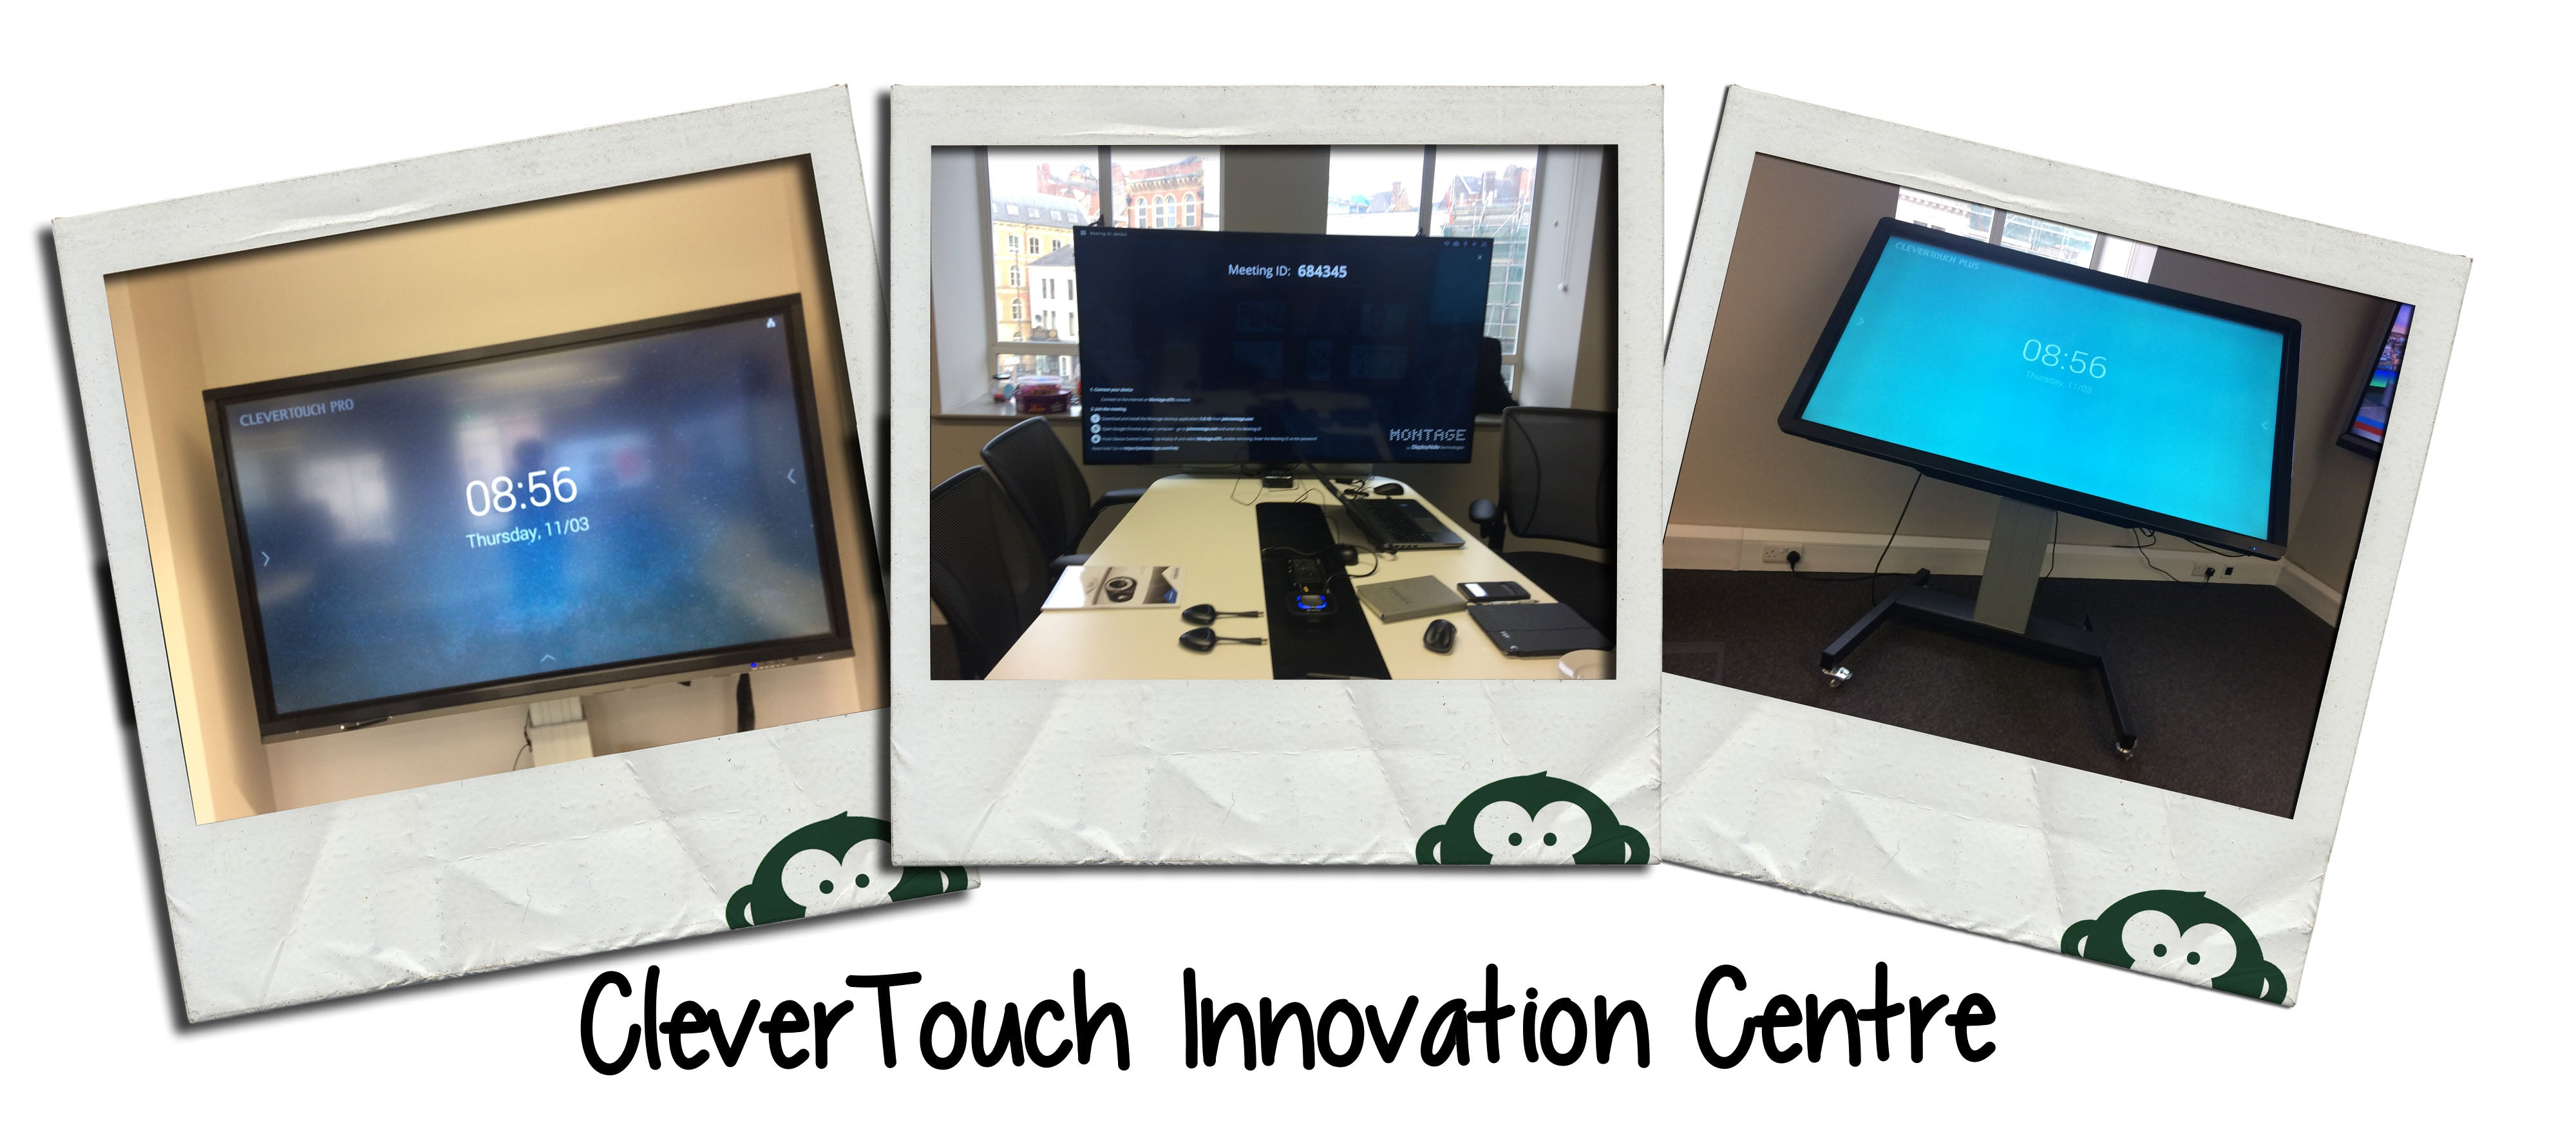 Clevertouch Innovation Centre